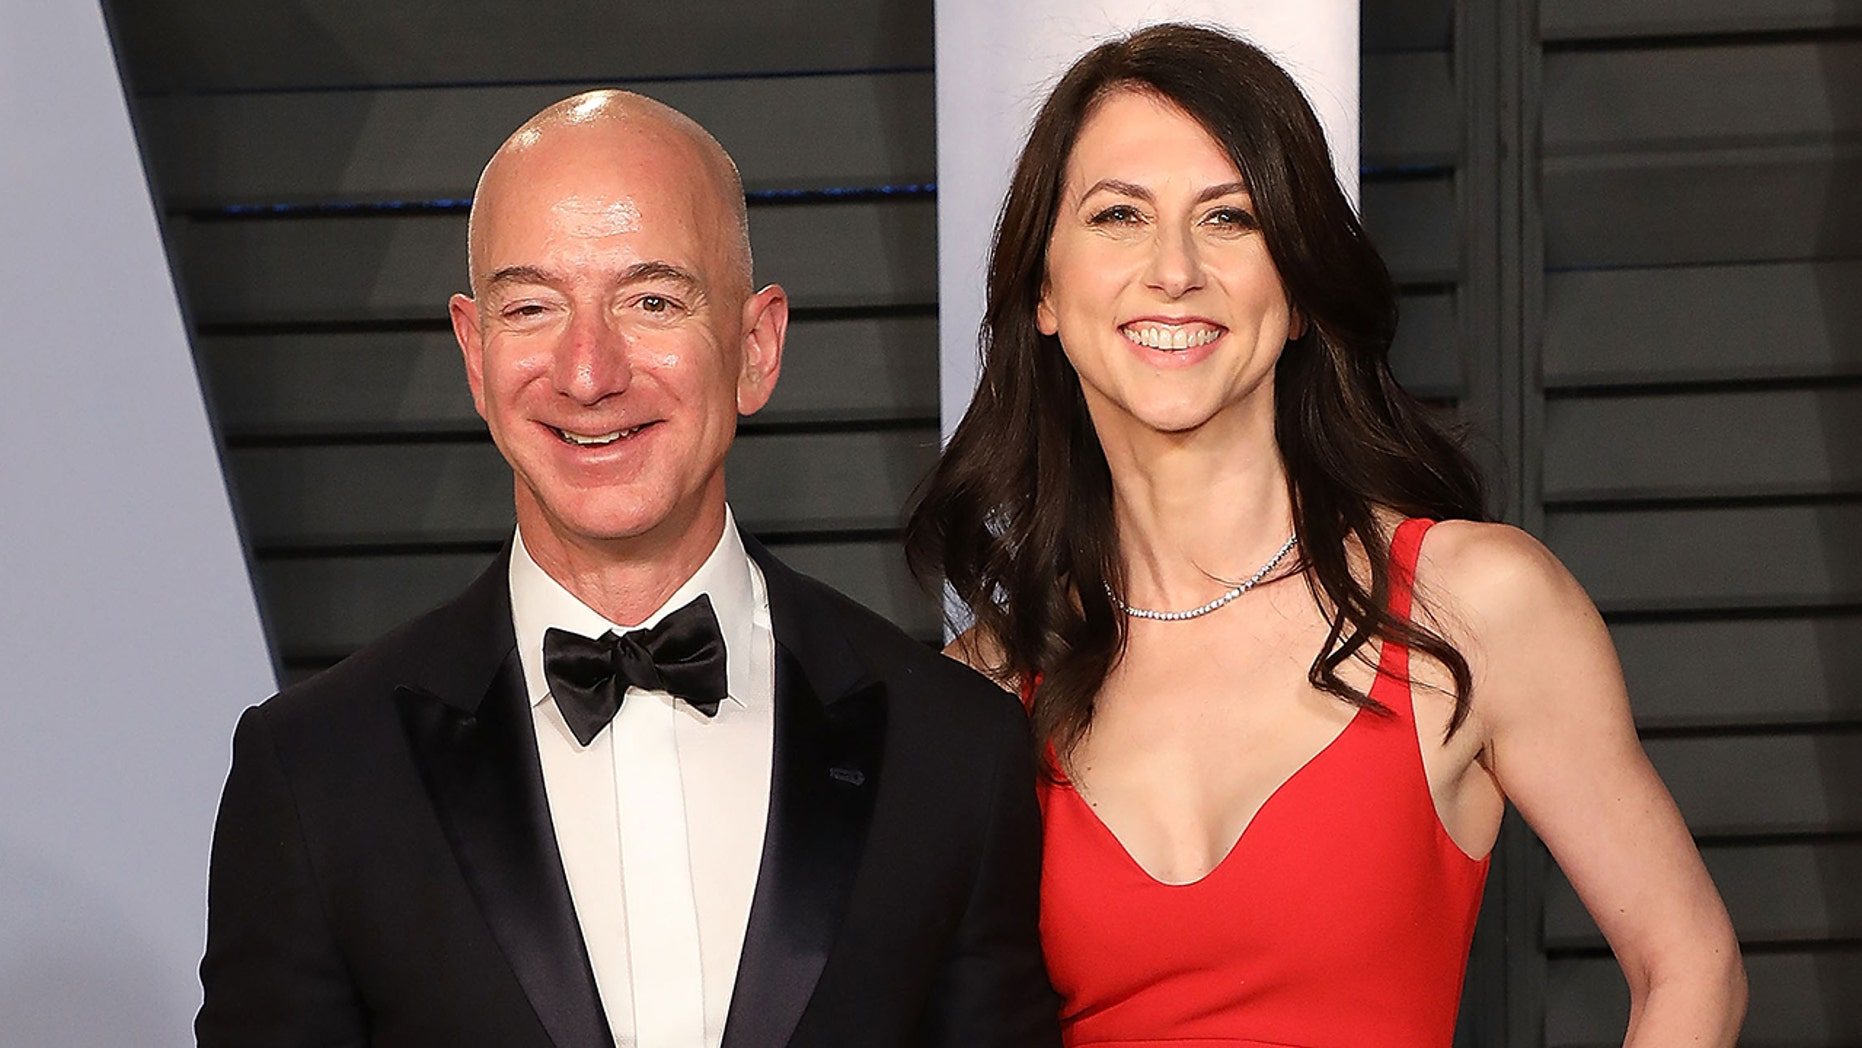 Amazon founder Jeff Bezos, wife MacKenzie finalize divorce